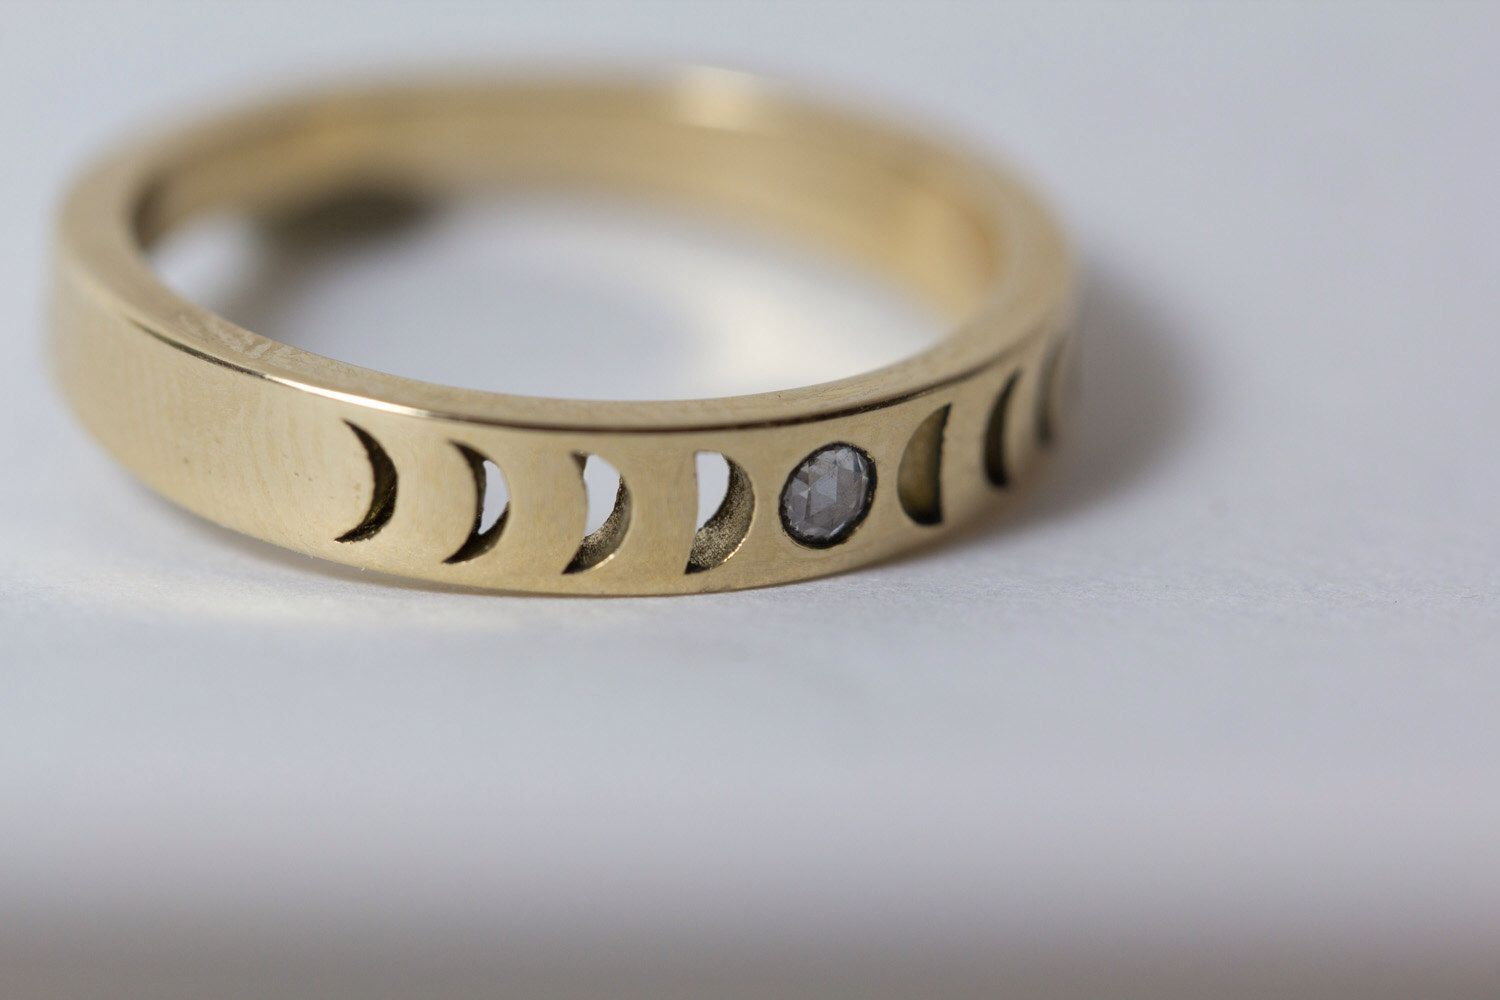 NEW Bisclavret Moonphase Ring in 14k gold set with a Rose Cut